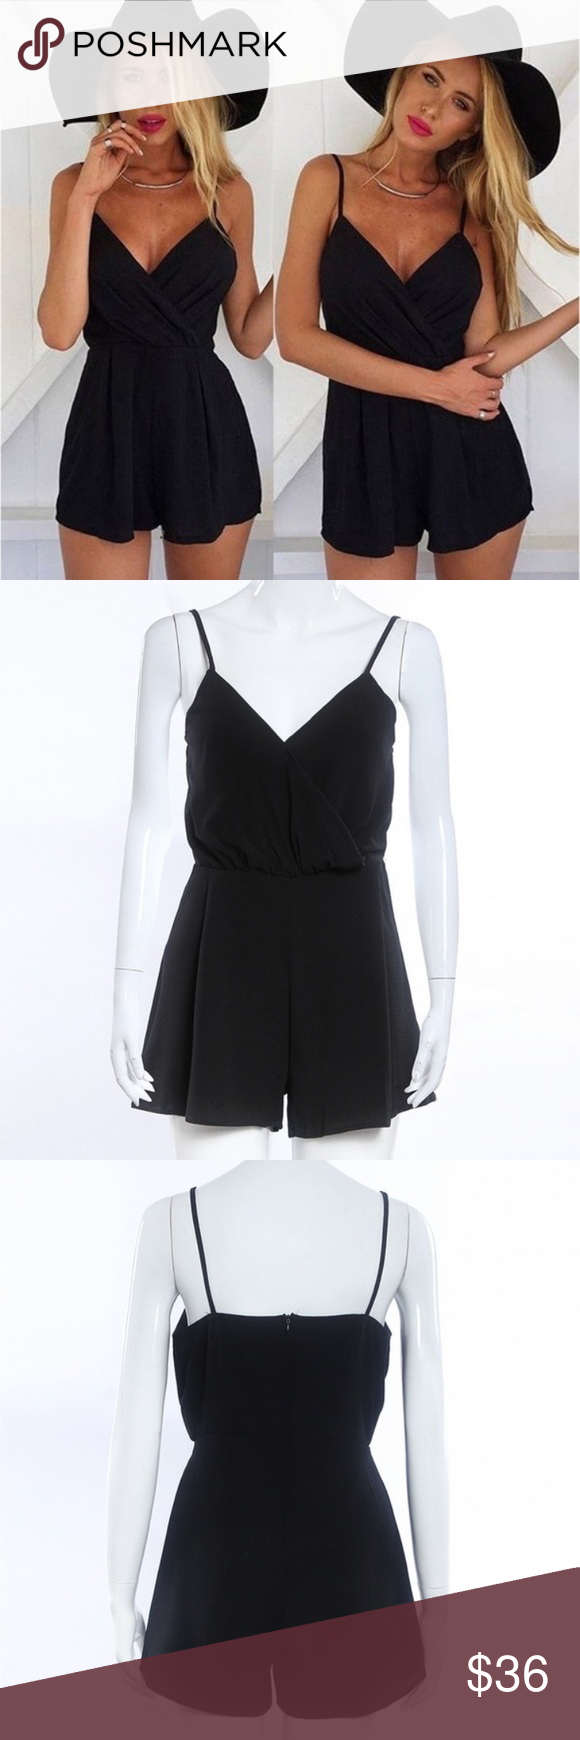 Black tank romper Black tank mini romper. Zipper on back. Larger around the waist.  Perfect for a summer dinner date or night out Pants Jumpsuits & Rompers #summerdinneroutfits